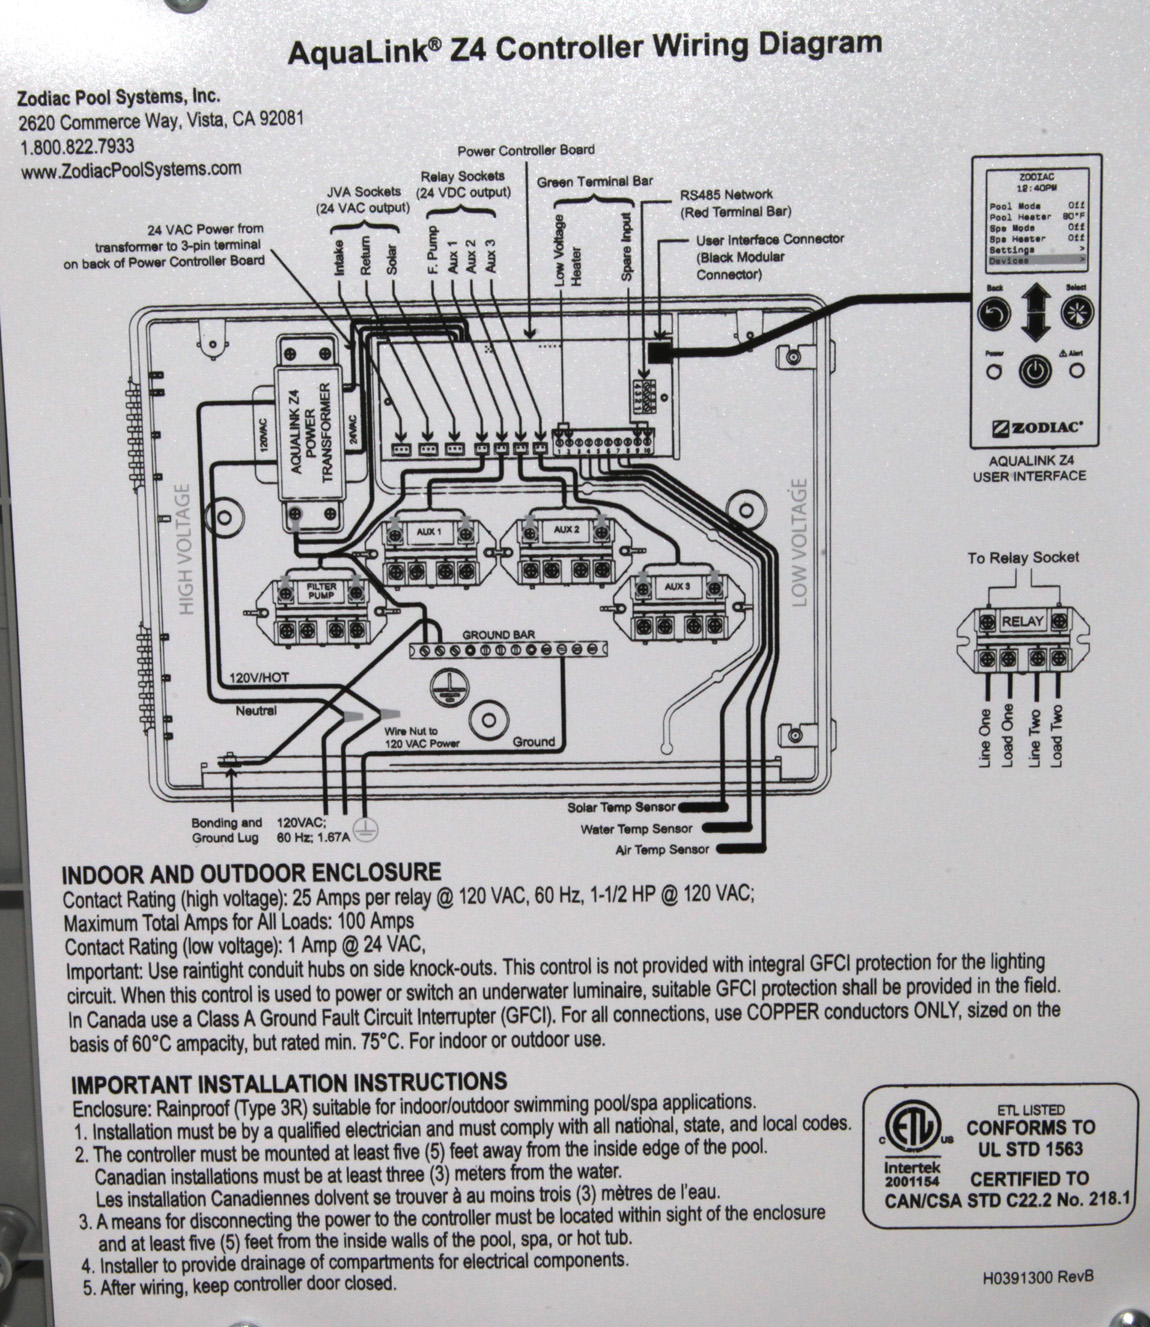 aqualink wiring diagram not lossing wiring diagram • jandy aqualink wiring diagram wiring diagram third level rh 14 19 13 jacobwinterstein com automotive wiring